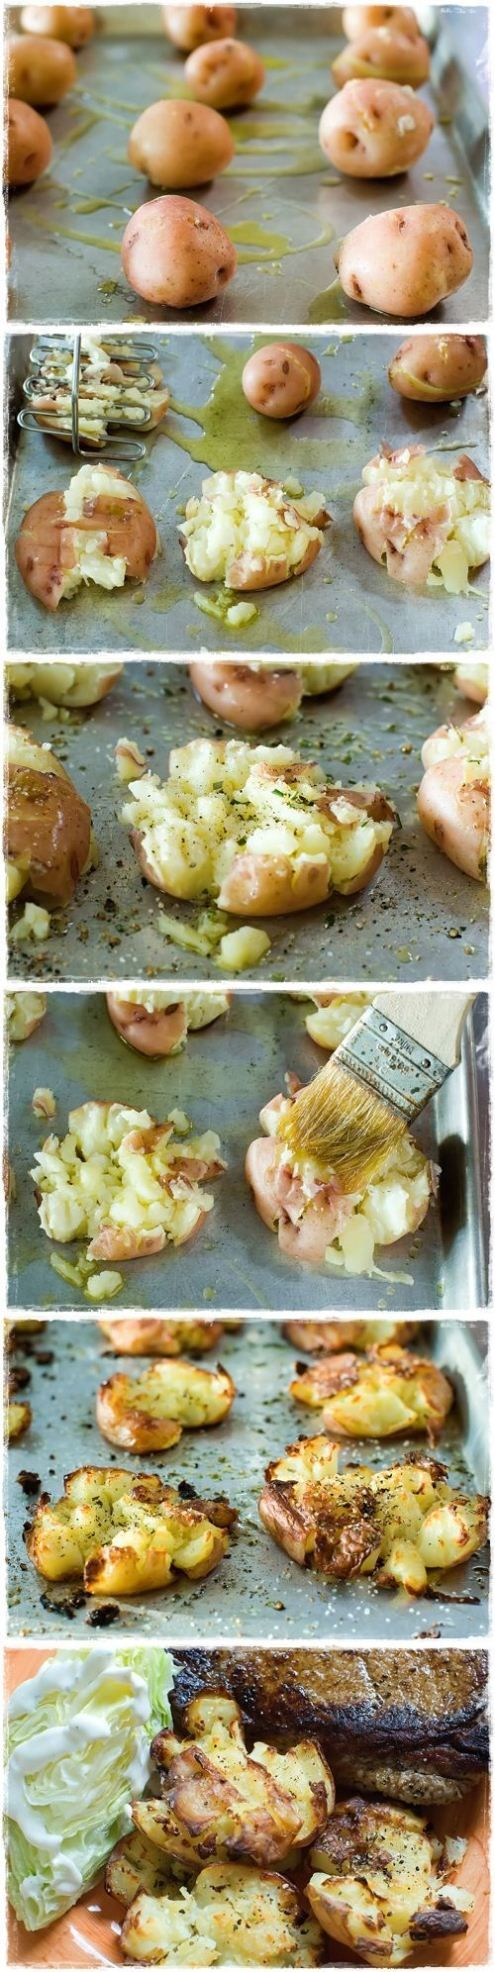 Potatoes, crispy, twice  baked, side dish                                                                                                                                                      More